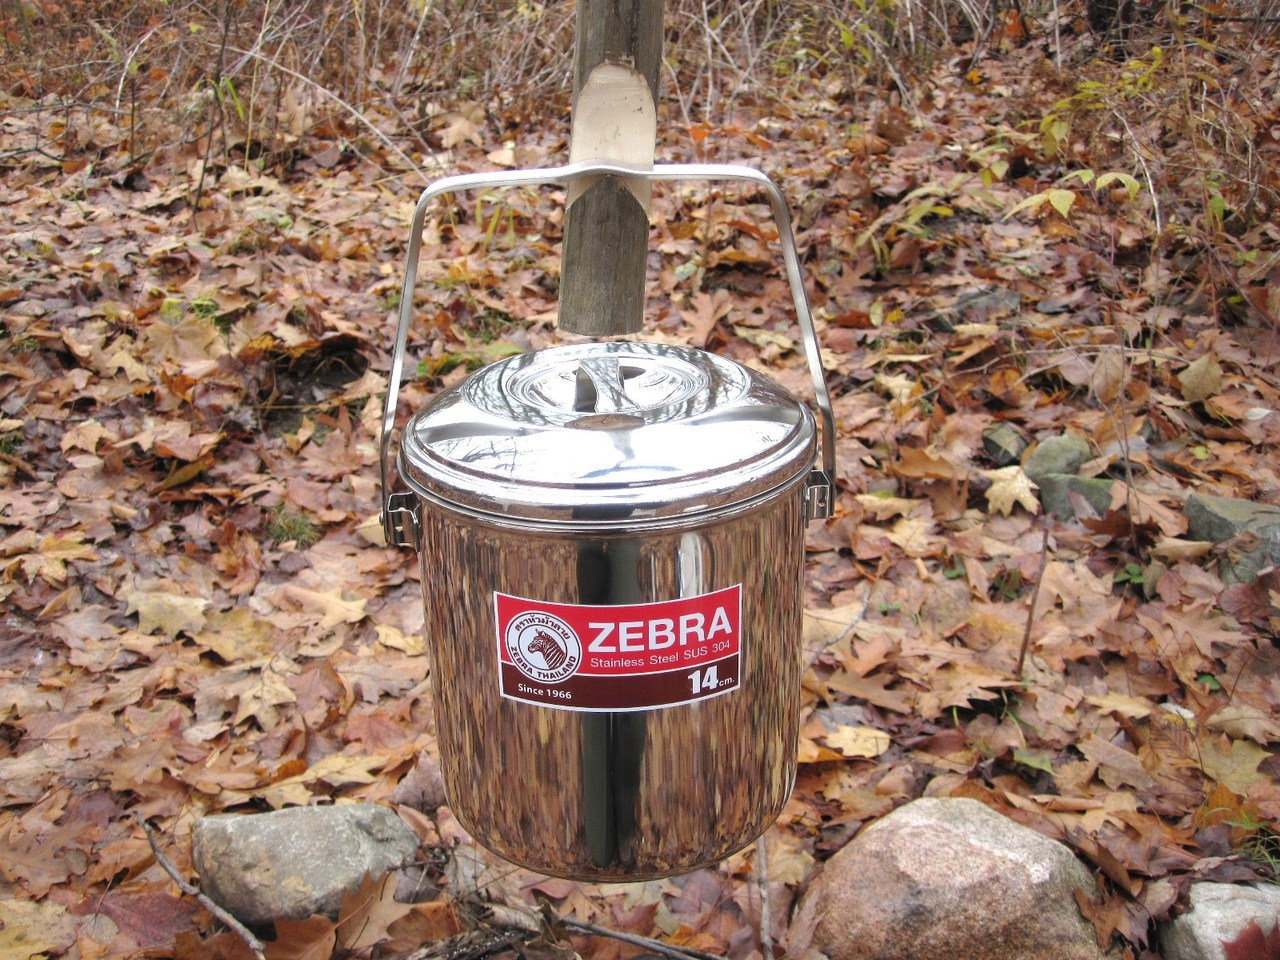 Zebra Loop Handle Pot fire